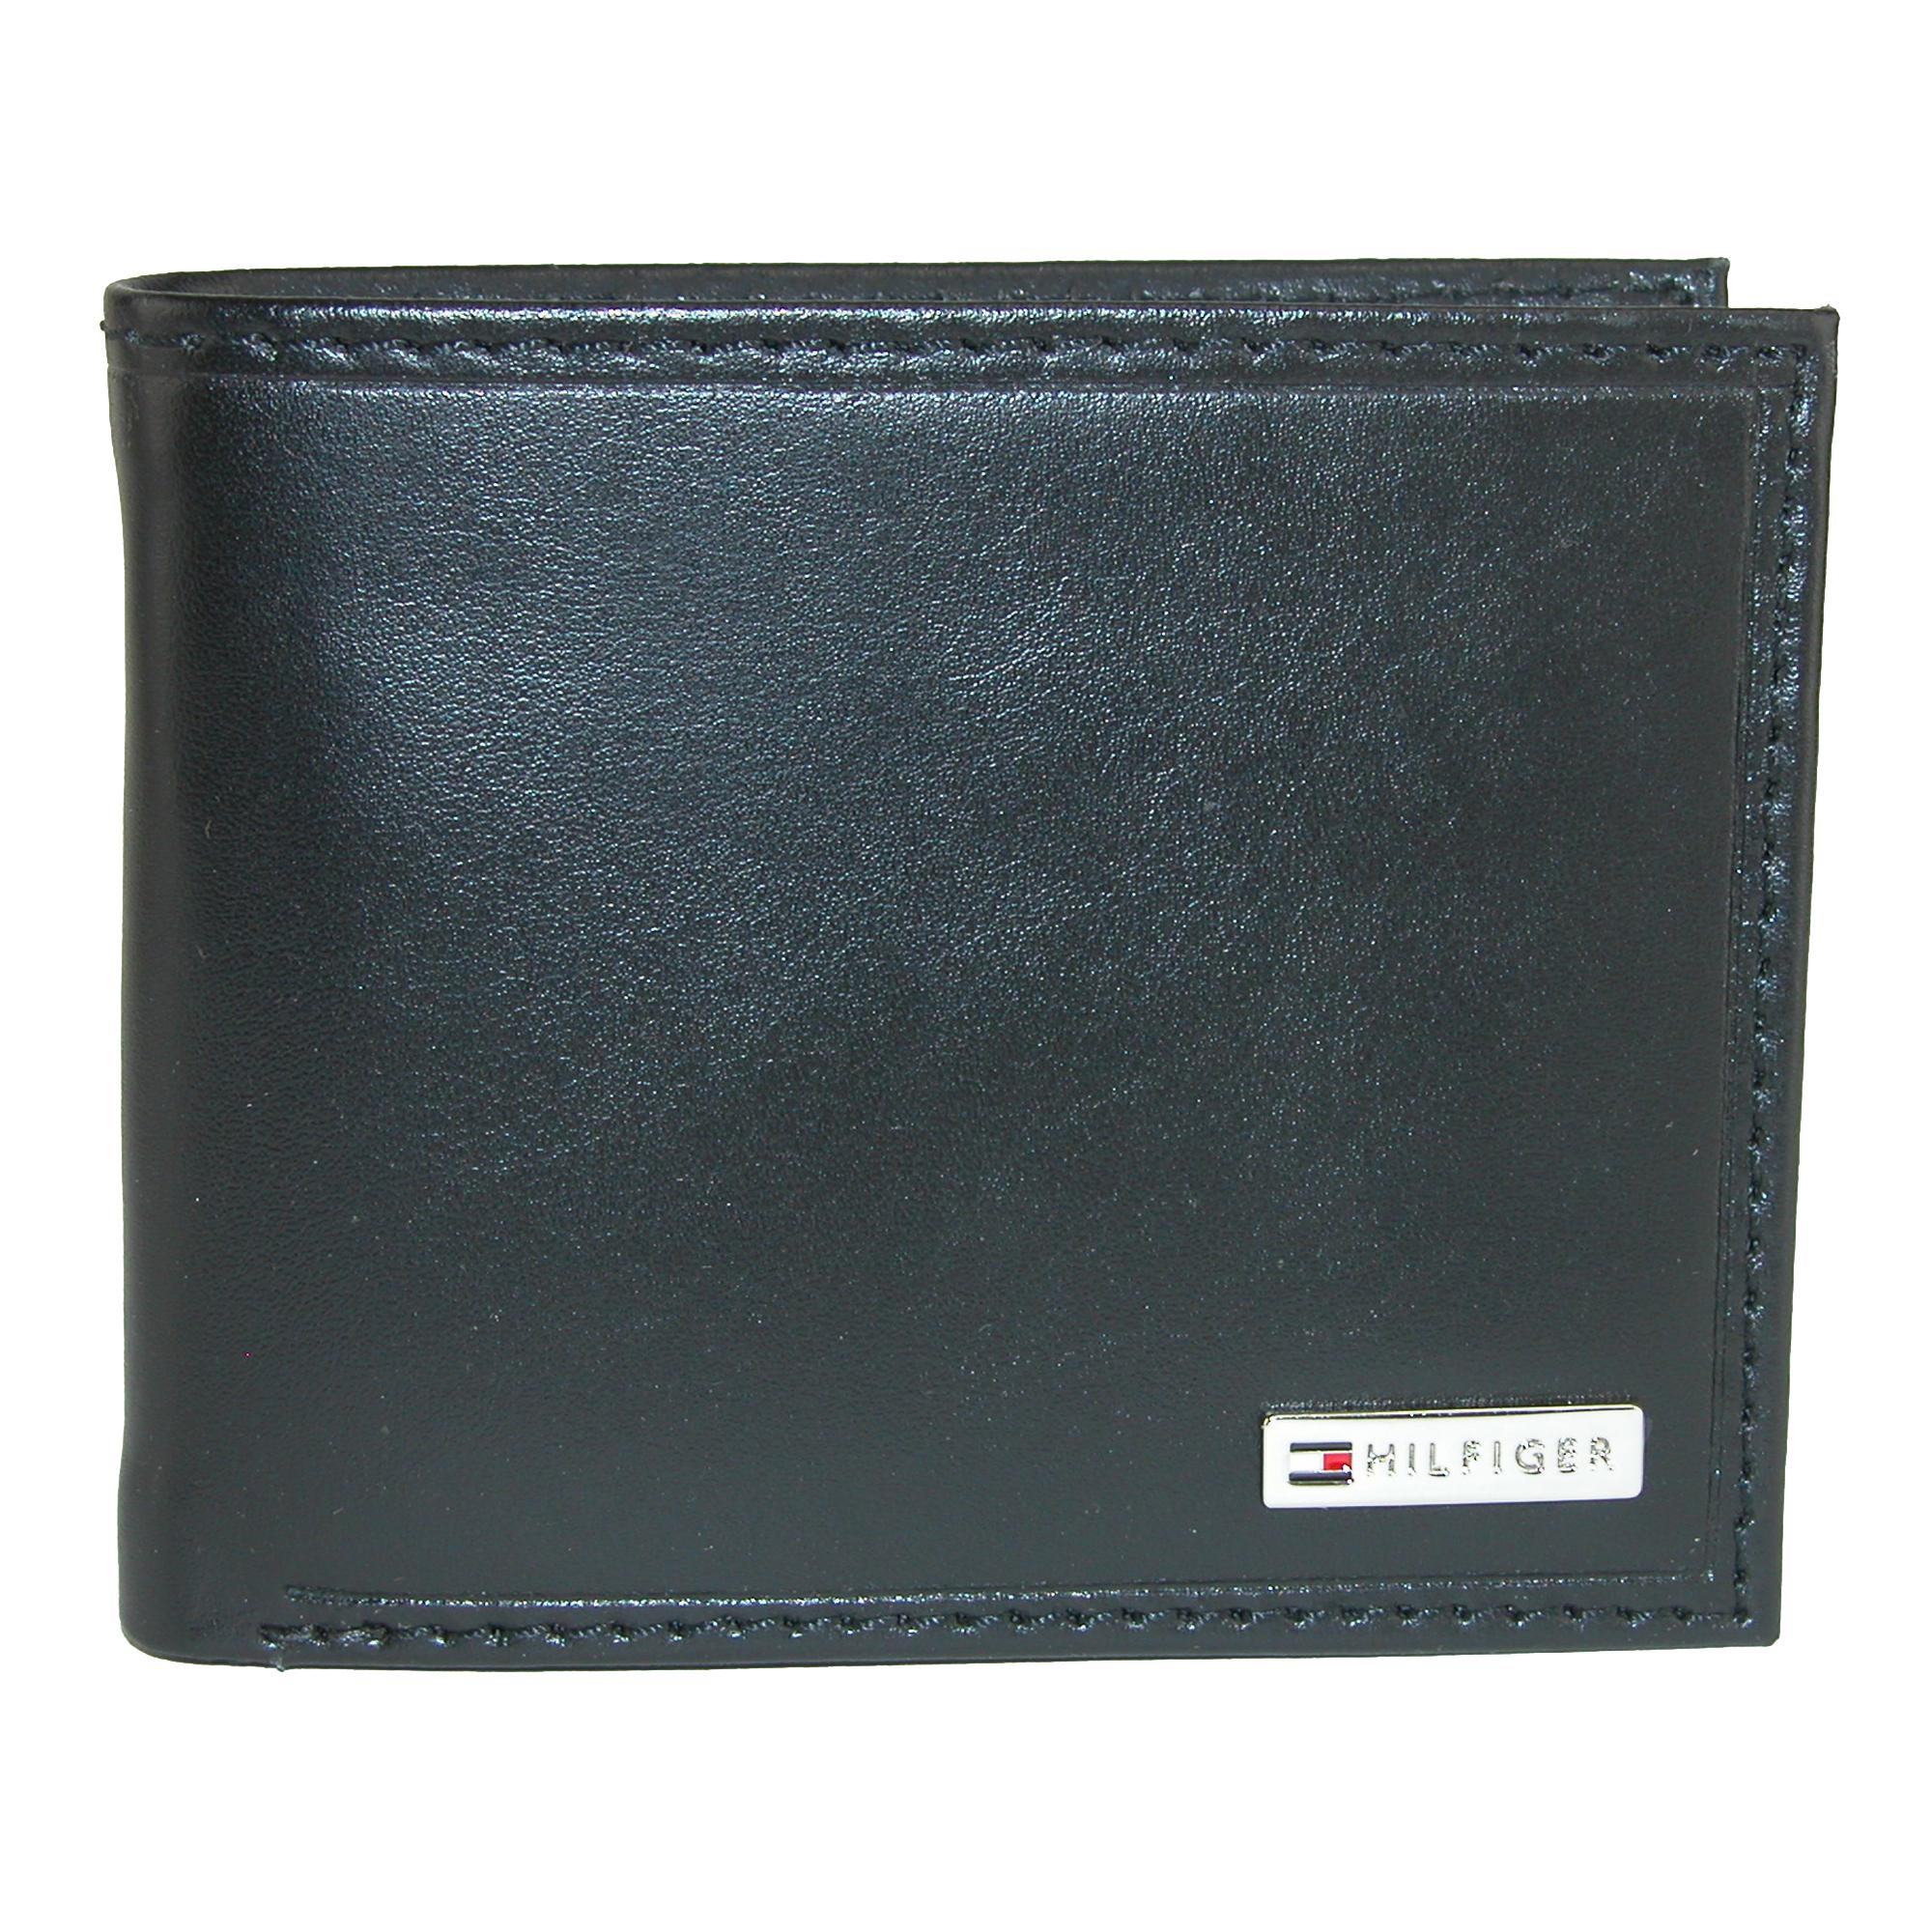 Tommy Hilfiger Men's Leather Fordham Bifold Wallet With Coin Pocket